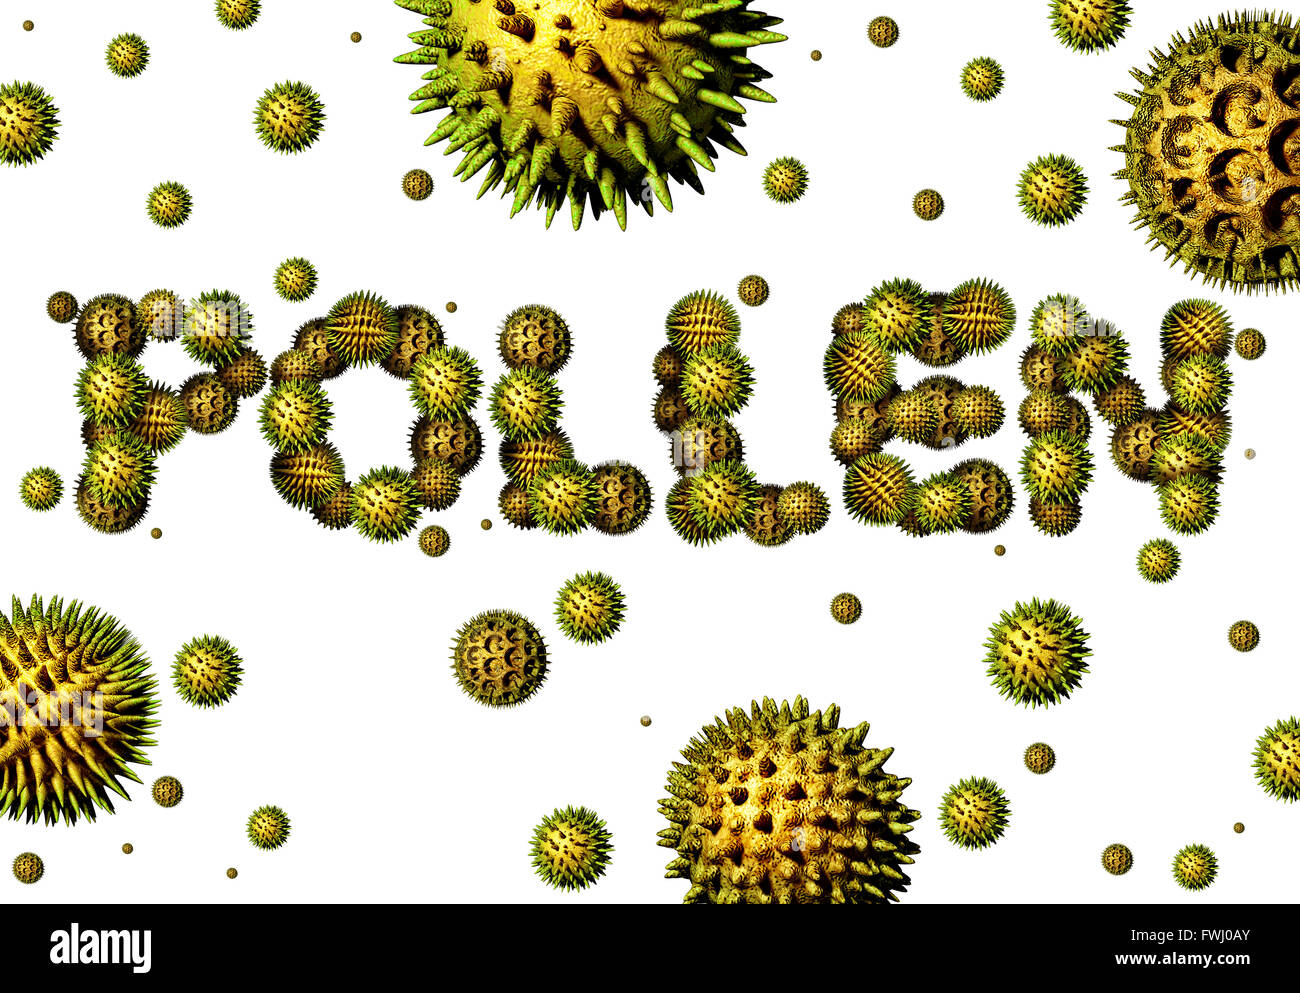 Pollen grains concept as a group of microscopic organic pollination particles shaped as text as flowering plants - Stock Image